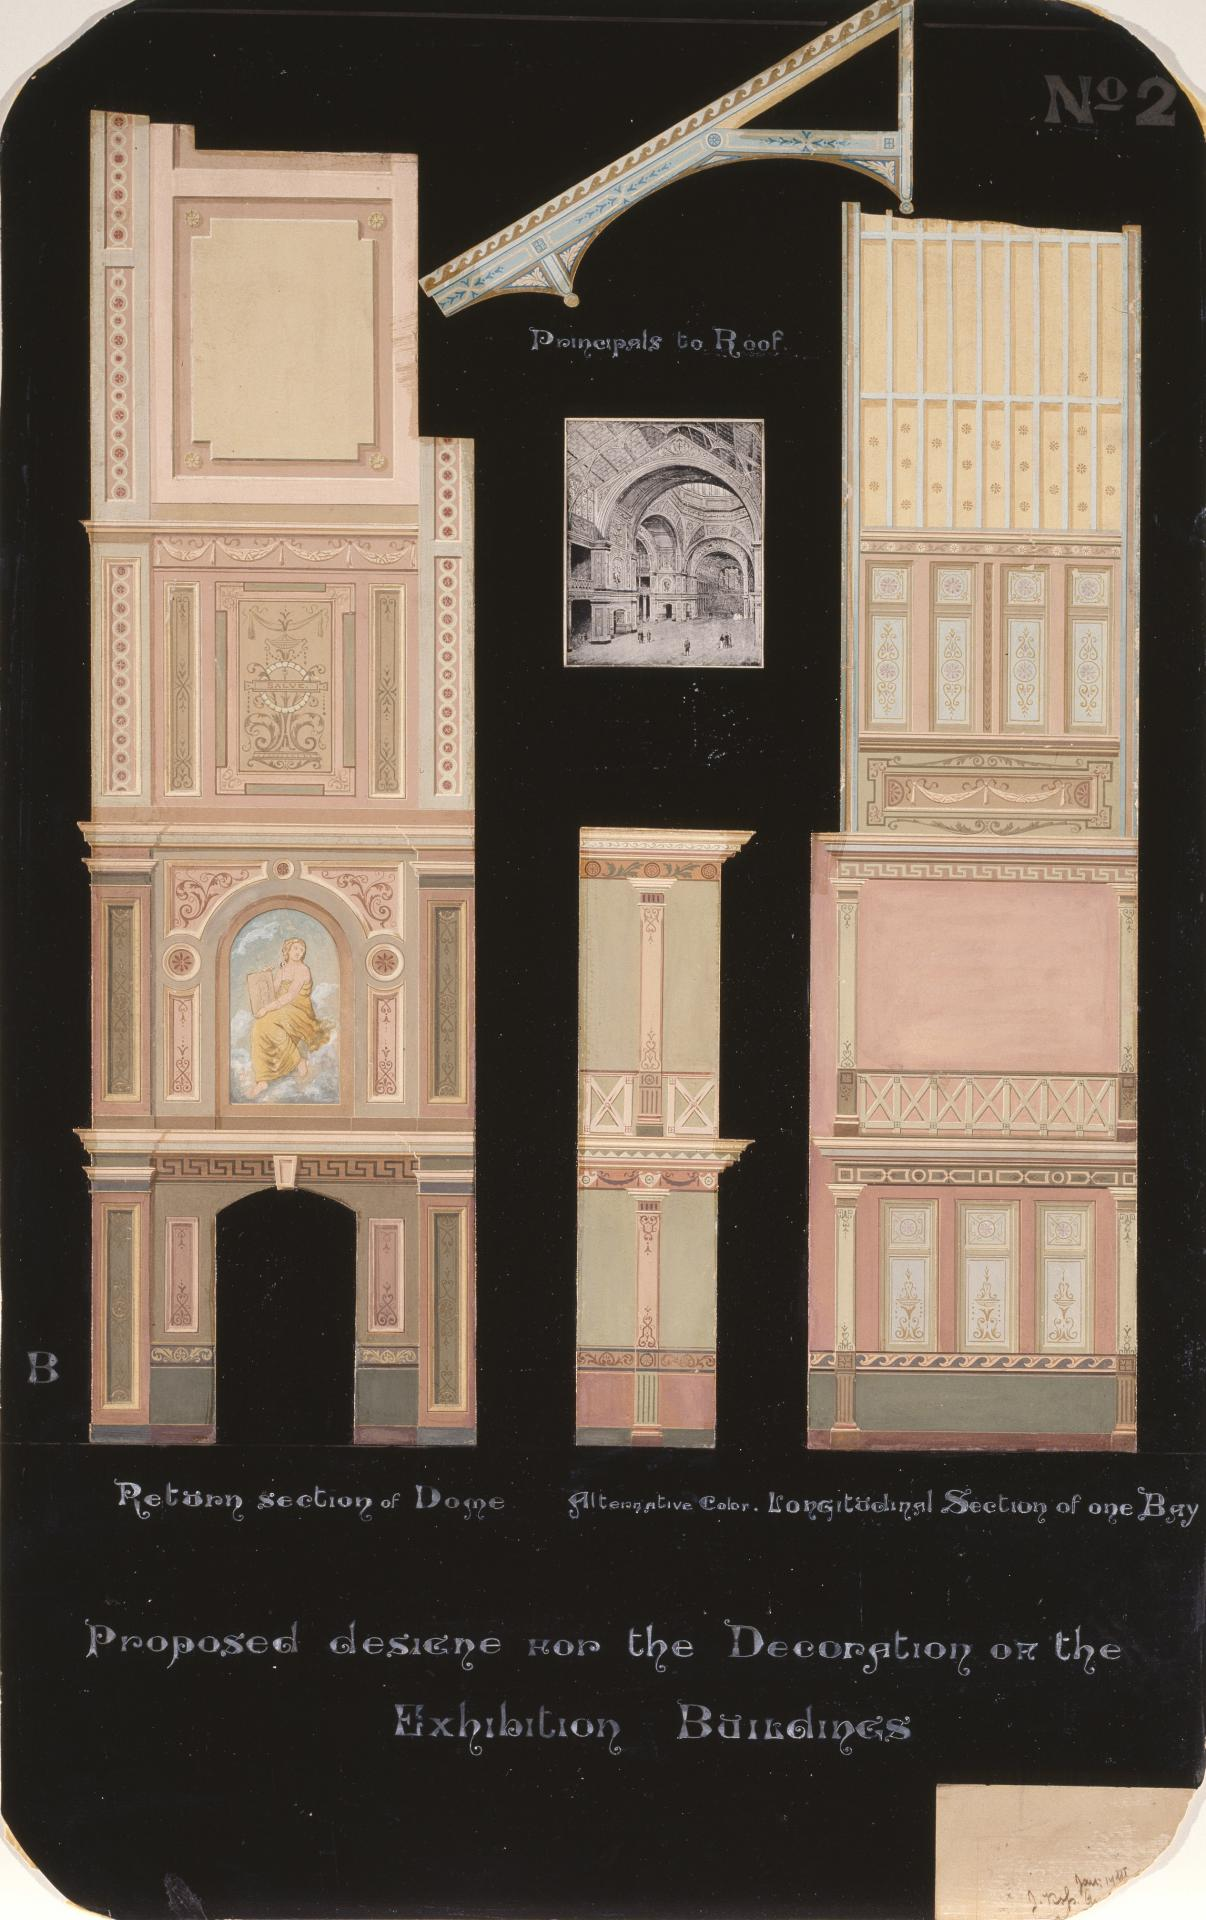 Proposed design for the decoration of the Exhibition Buildings, no.2